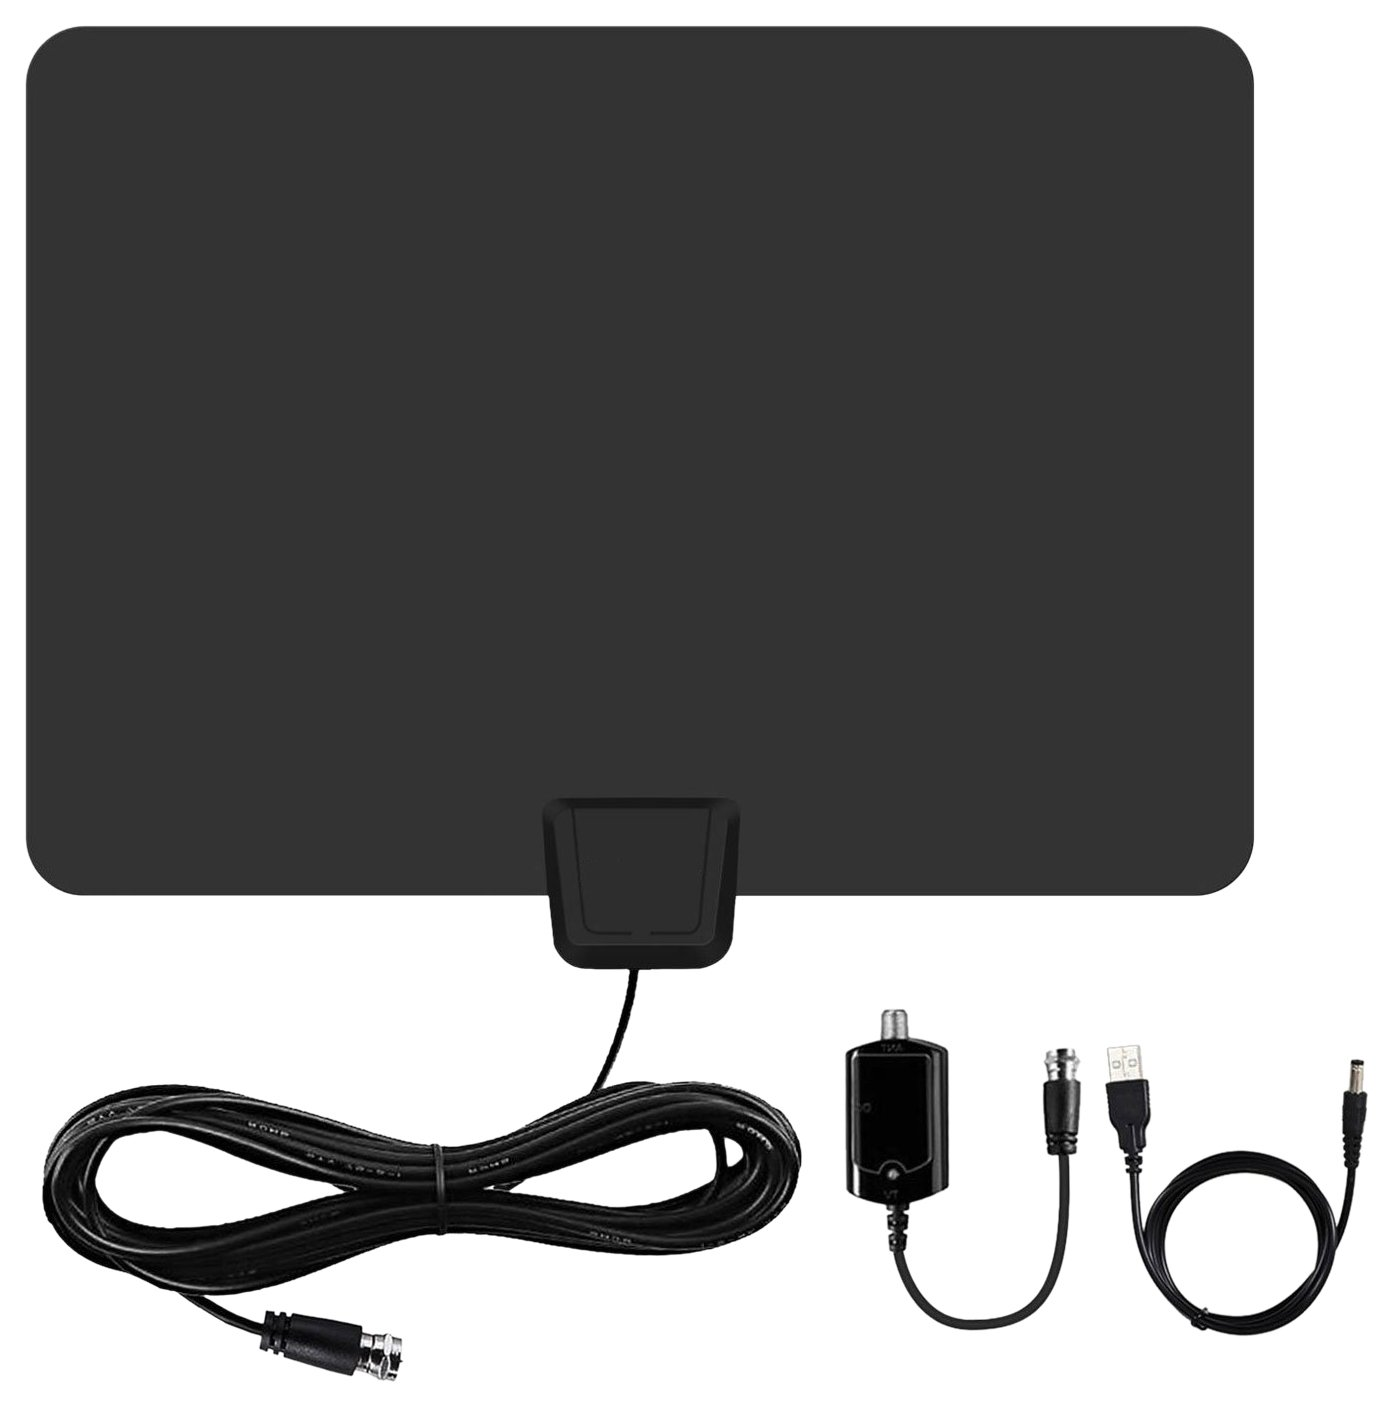 TV Antenna, Gipow 50 Mile Range Amplified Indoor HDTV Antenna with  Detachable Amplifier USB Power